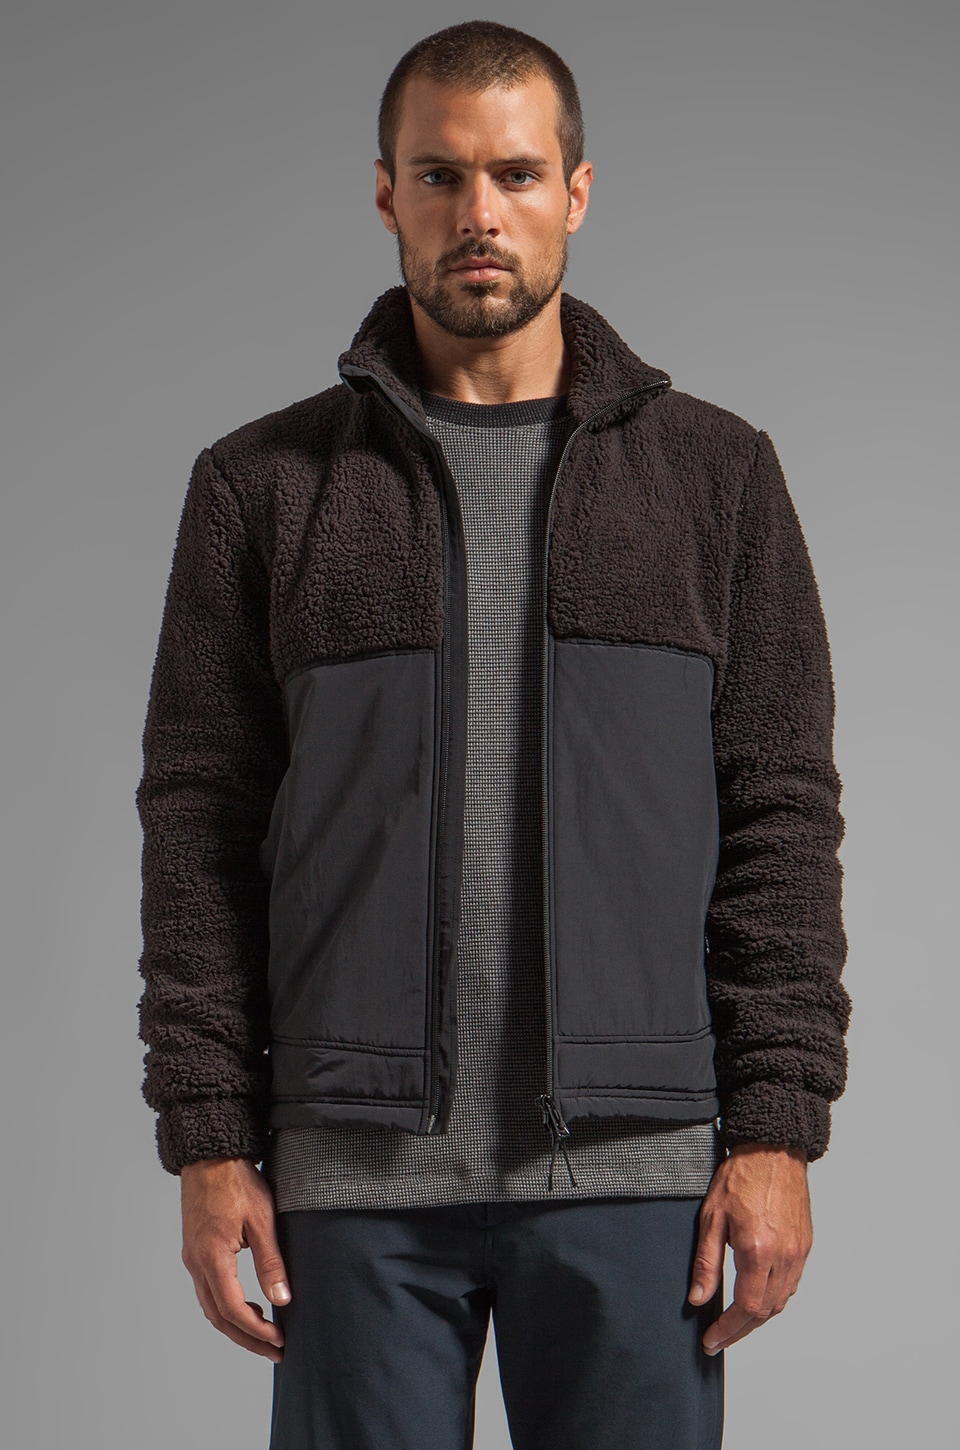 Theory 38 Braker Jacket in Black